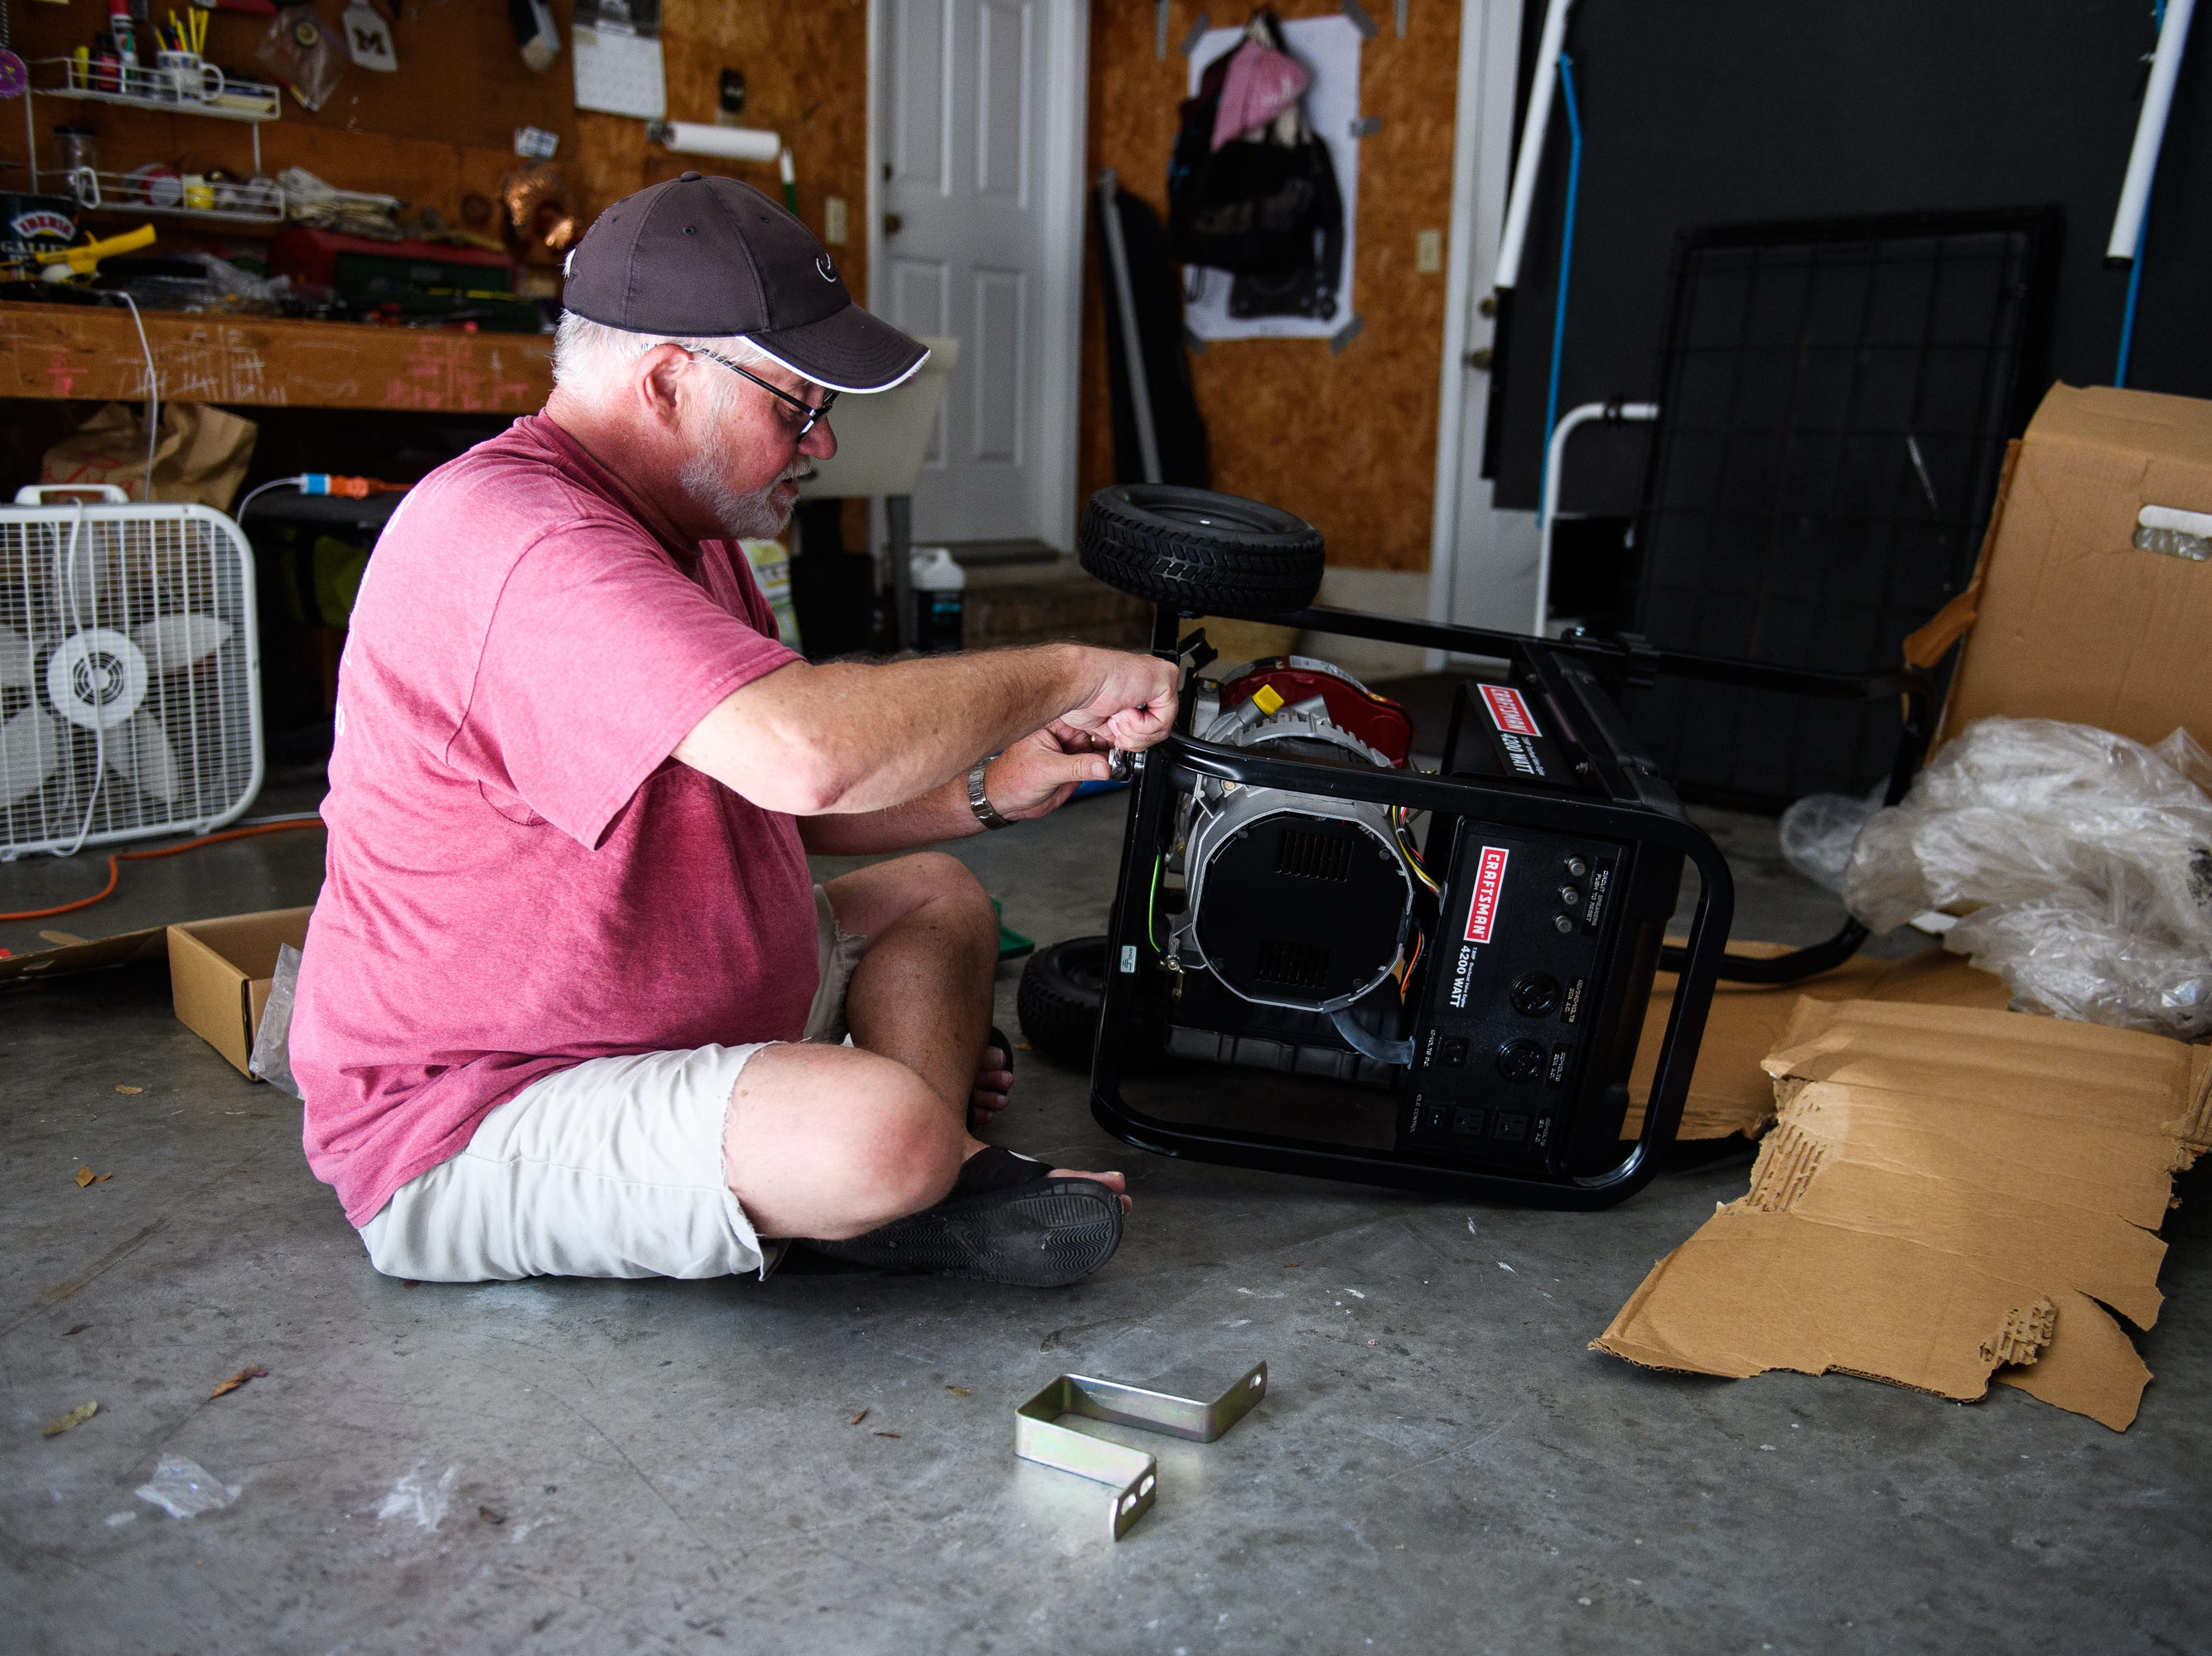 North Myrtle Beach resident Shaun Laughlin puts together a generator in his garage on Tuesday, Sept. 11, 2018 as he prepares for Hurricane Florence's arrival later this week. Laughlin says he will ride out the storm at his mother-in-law's house.